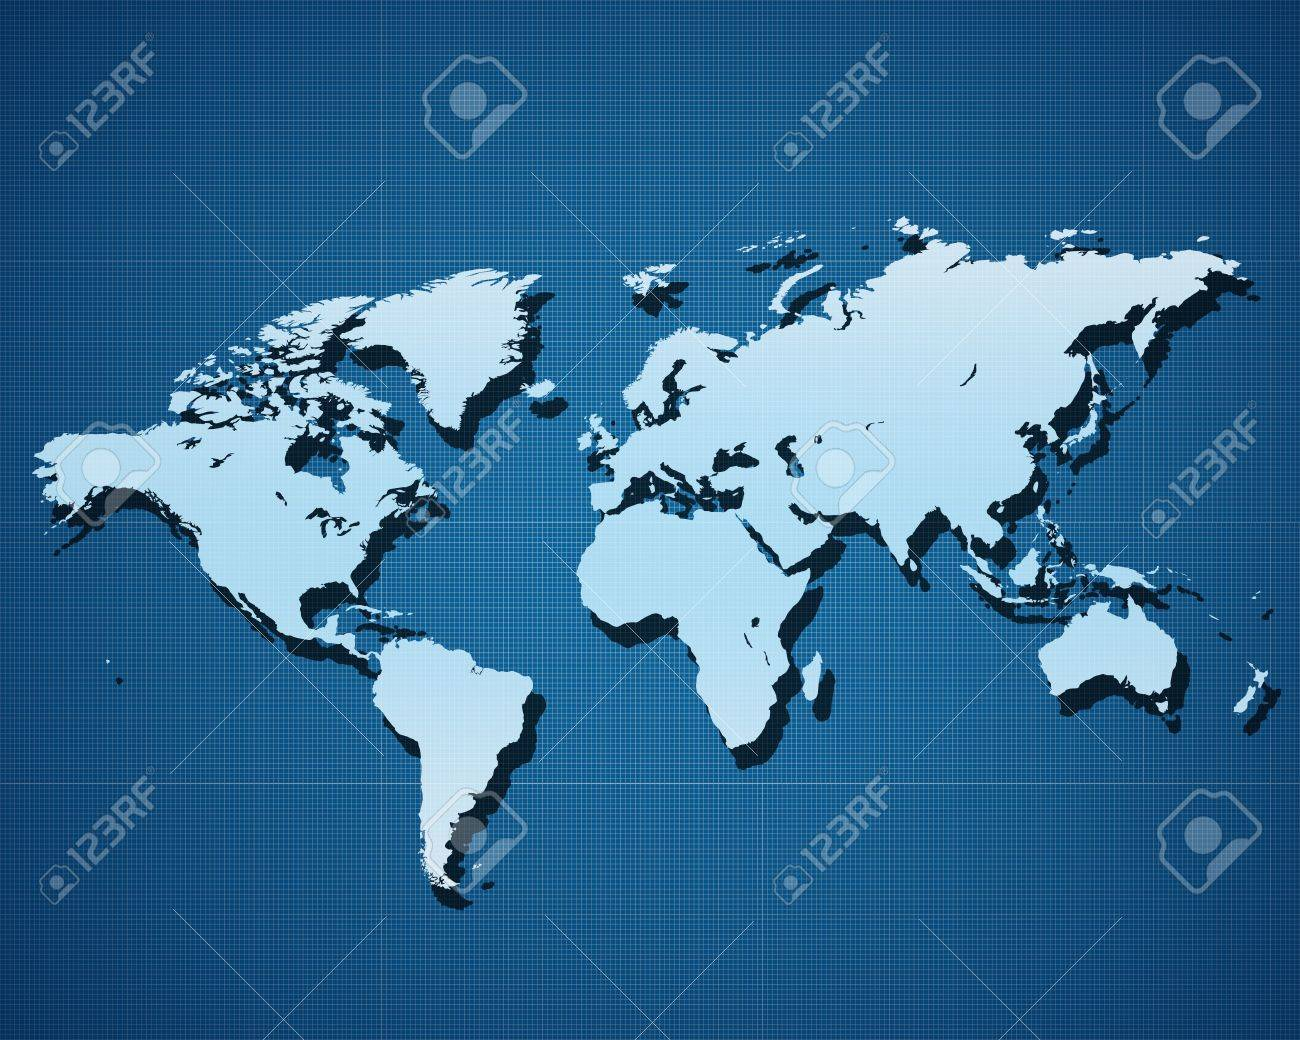 World map europe america africa on blue background stock photo stock photo world map europe america africa on blue background gumiabroncs Image collections